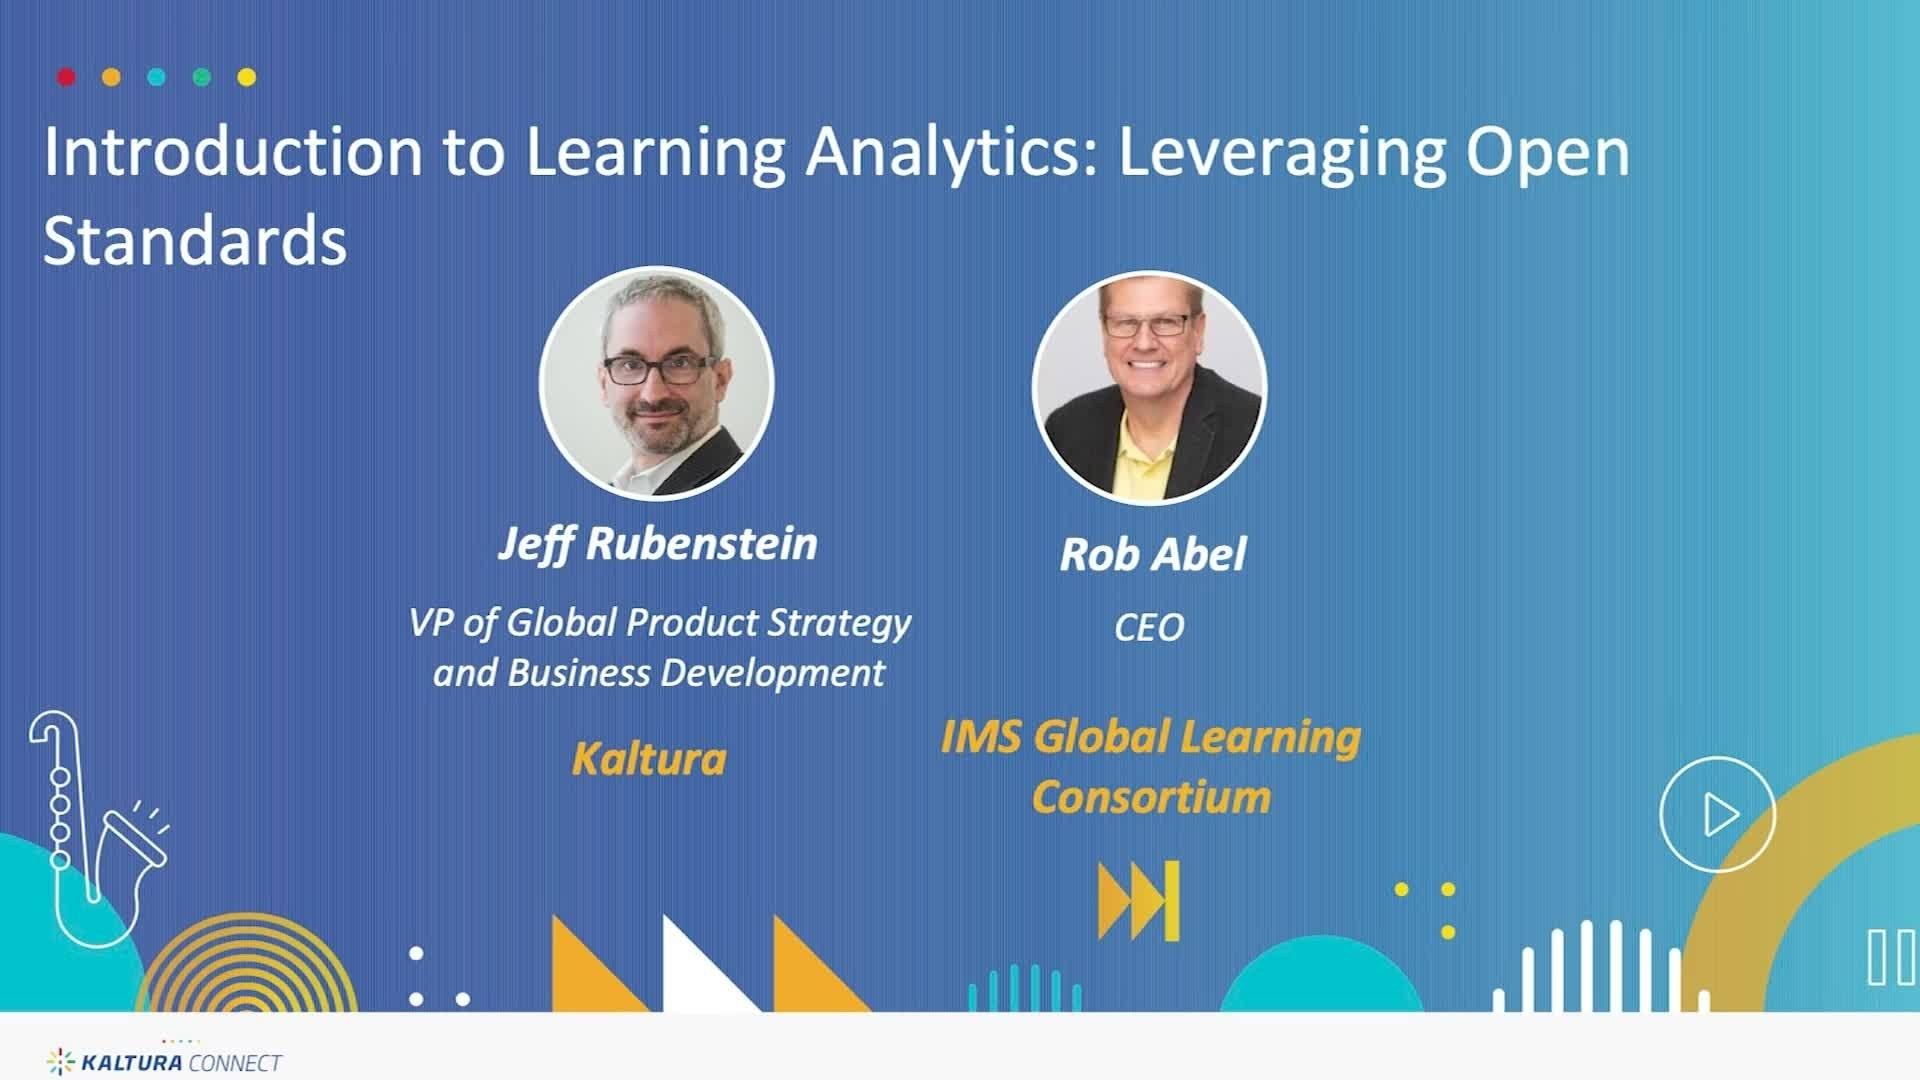 Introduction to Learning Analytics- Leveraging Open Standards